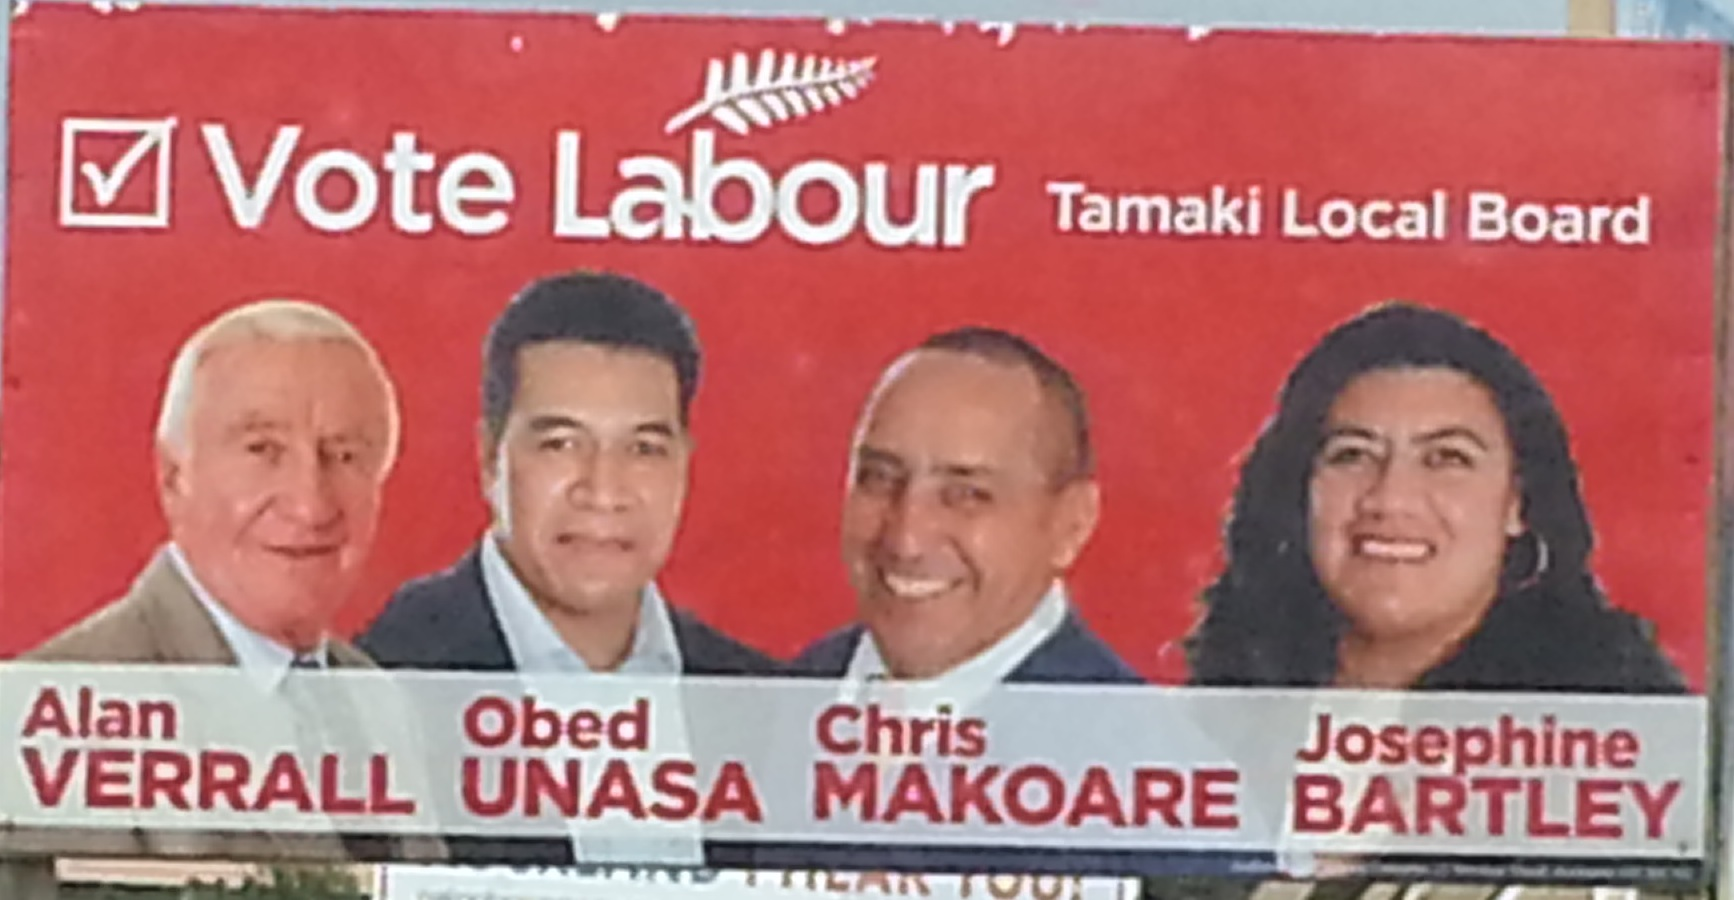 Labour Party - 2013 Local Election